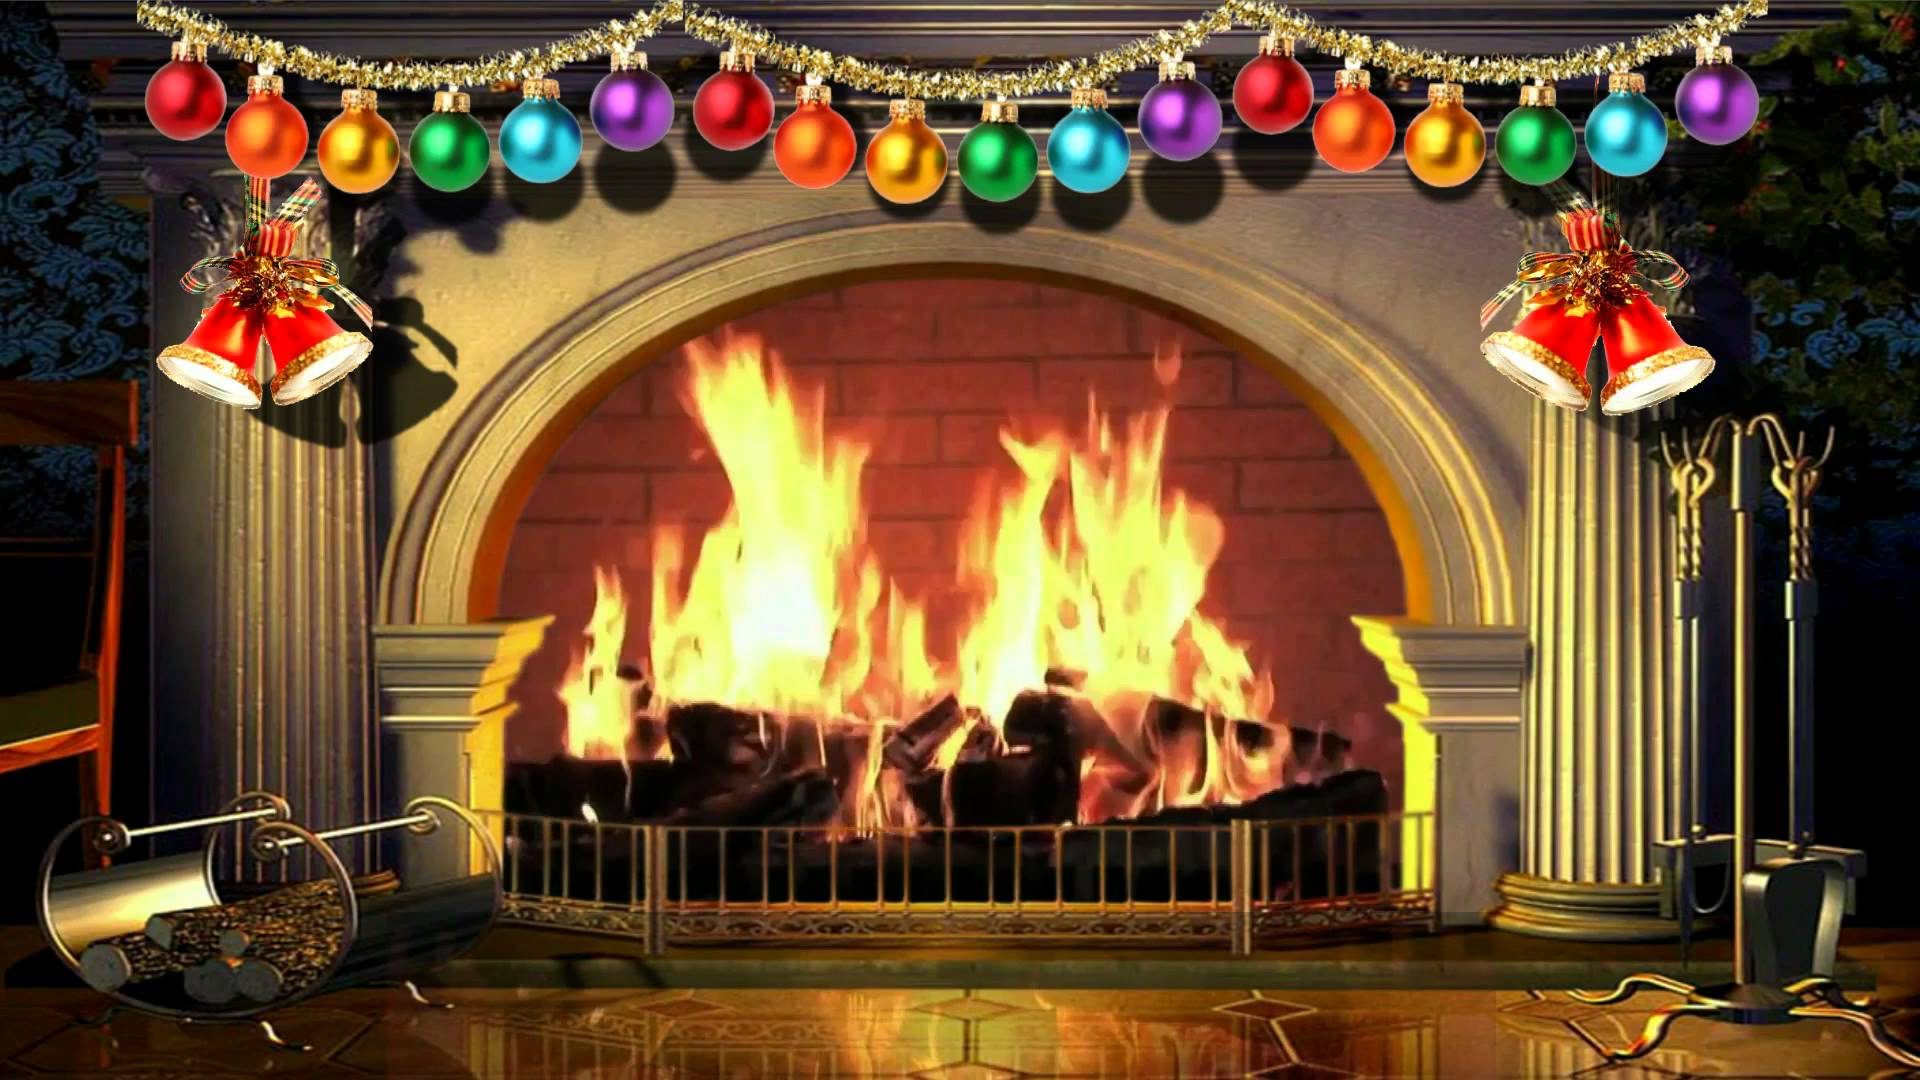 Fireplace clipart christmas fireplace scene Decorations Christmas Archivoclinico: 2016 Decorations